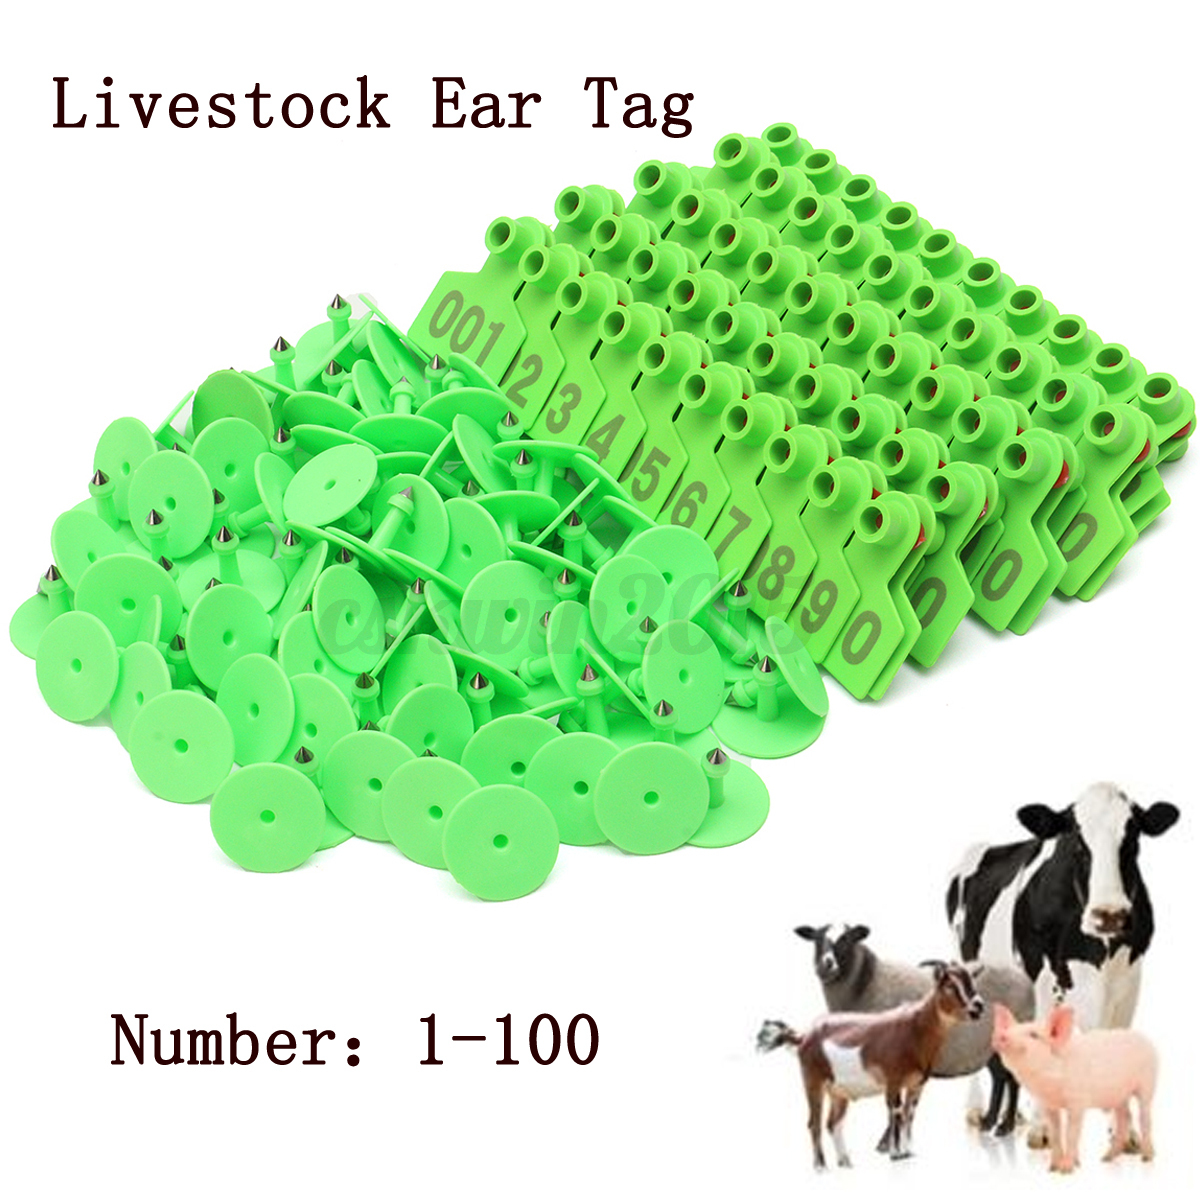 50x42mm Plastic Livestock 1 100 Number Animal Ear Tags For